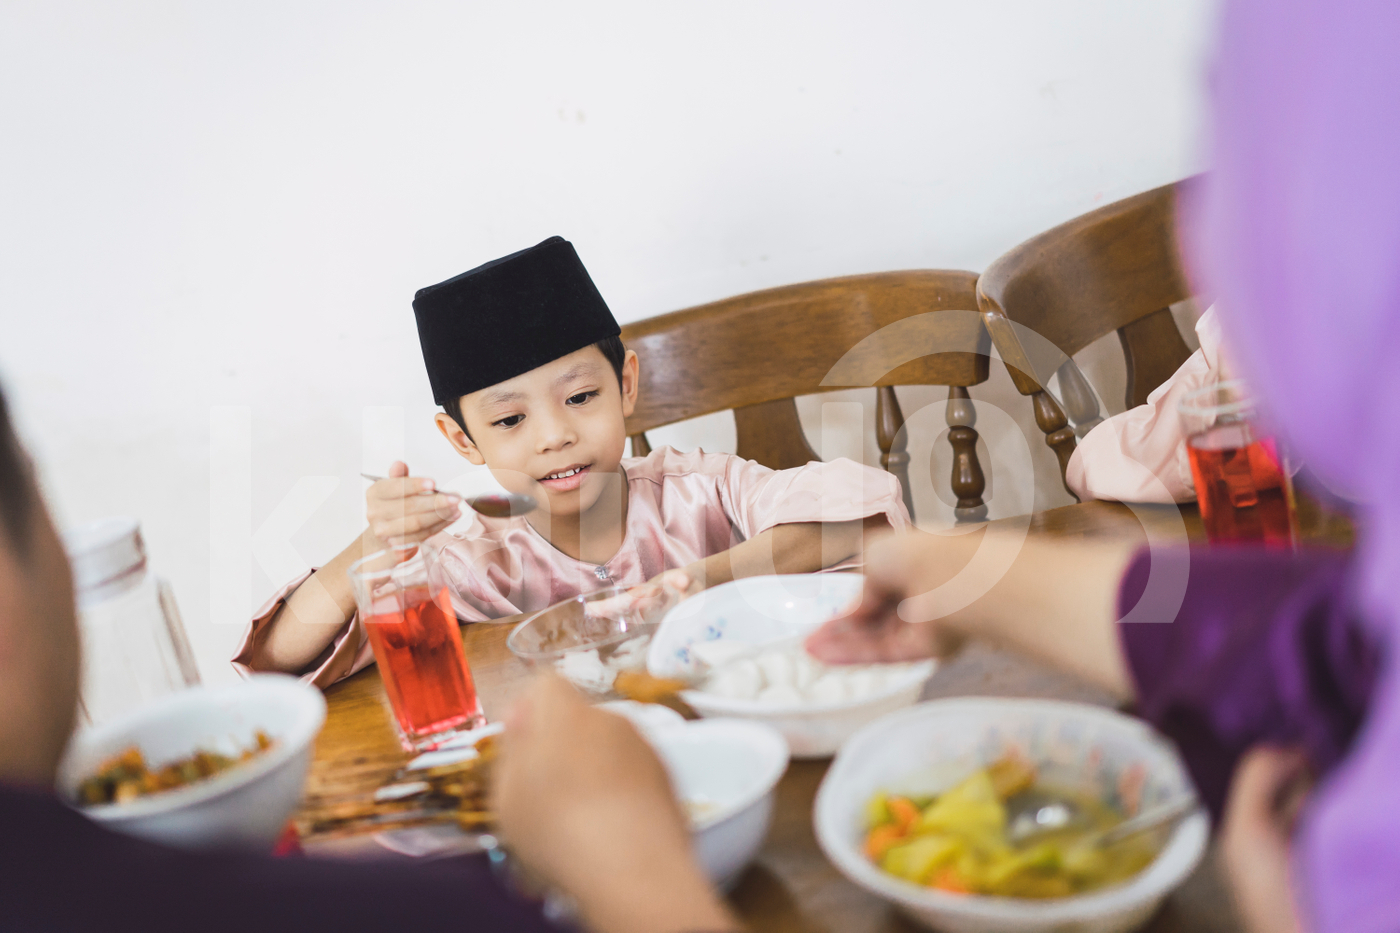 Muslim family enjoying dinner